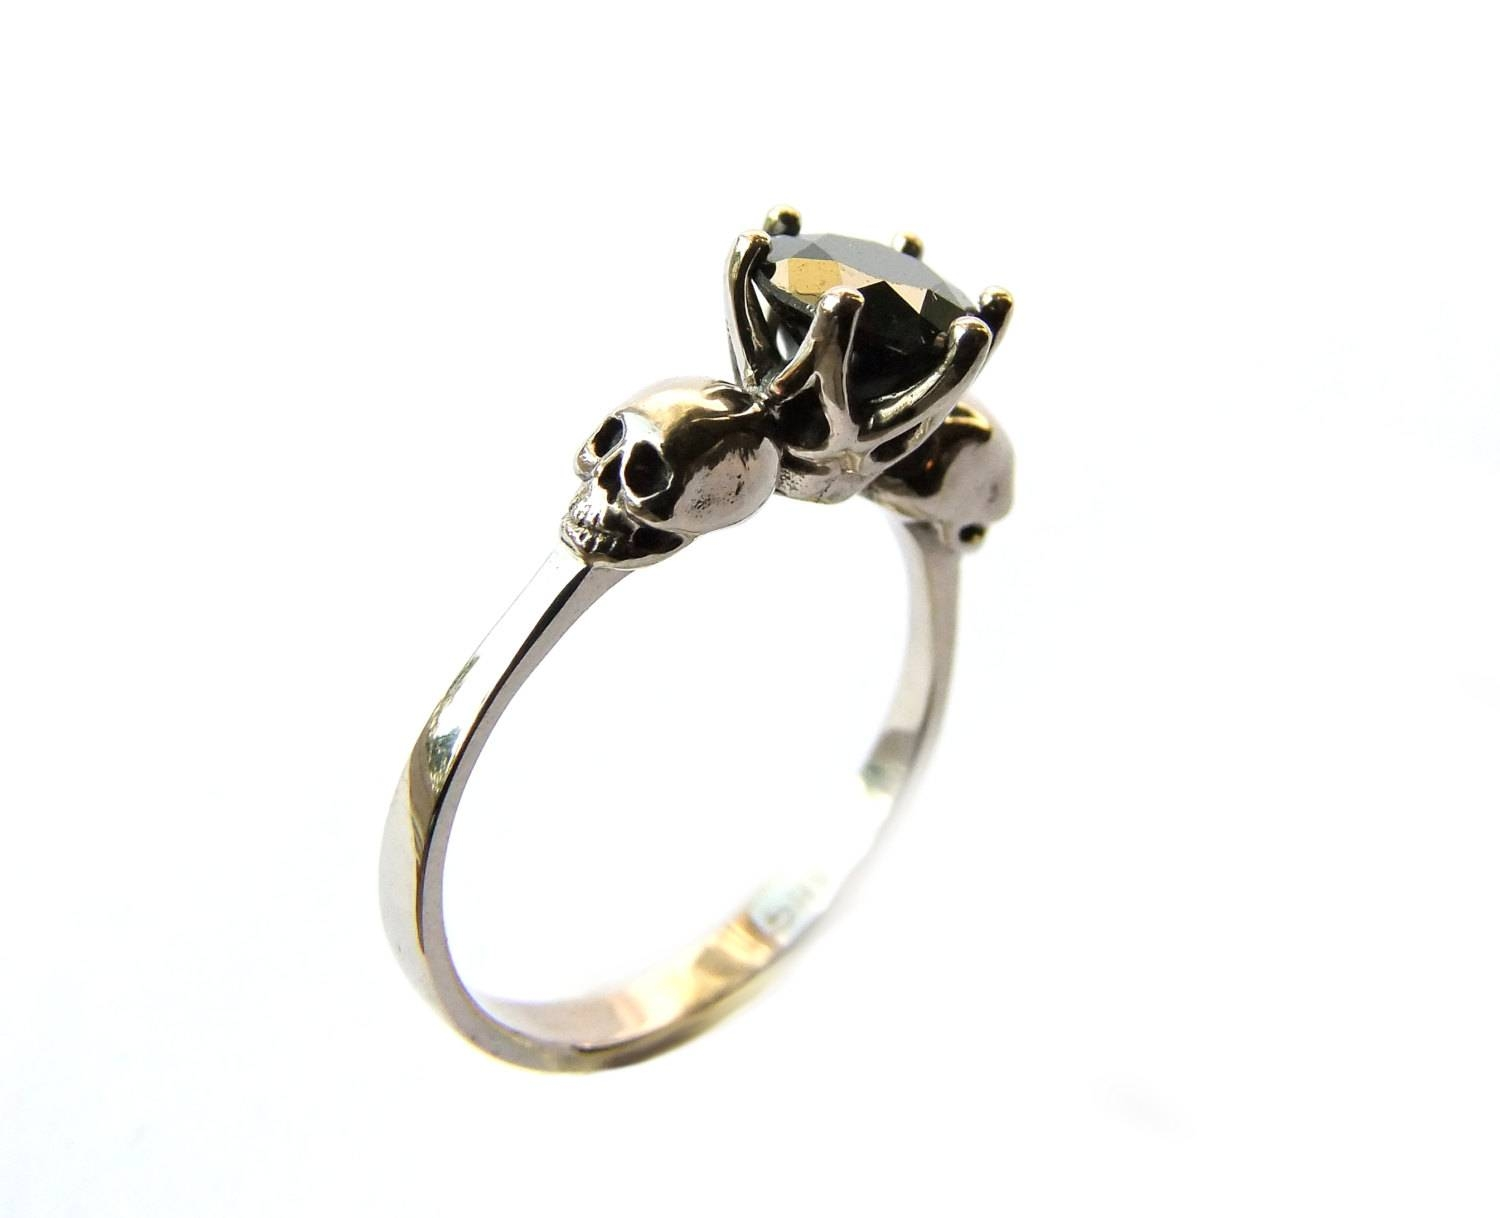 Skull Engagement Ring Black Diamond White Gold Memento Mori Within Black Diamond Skull Engagement Rings (View 12 of 15)